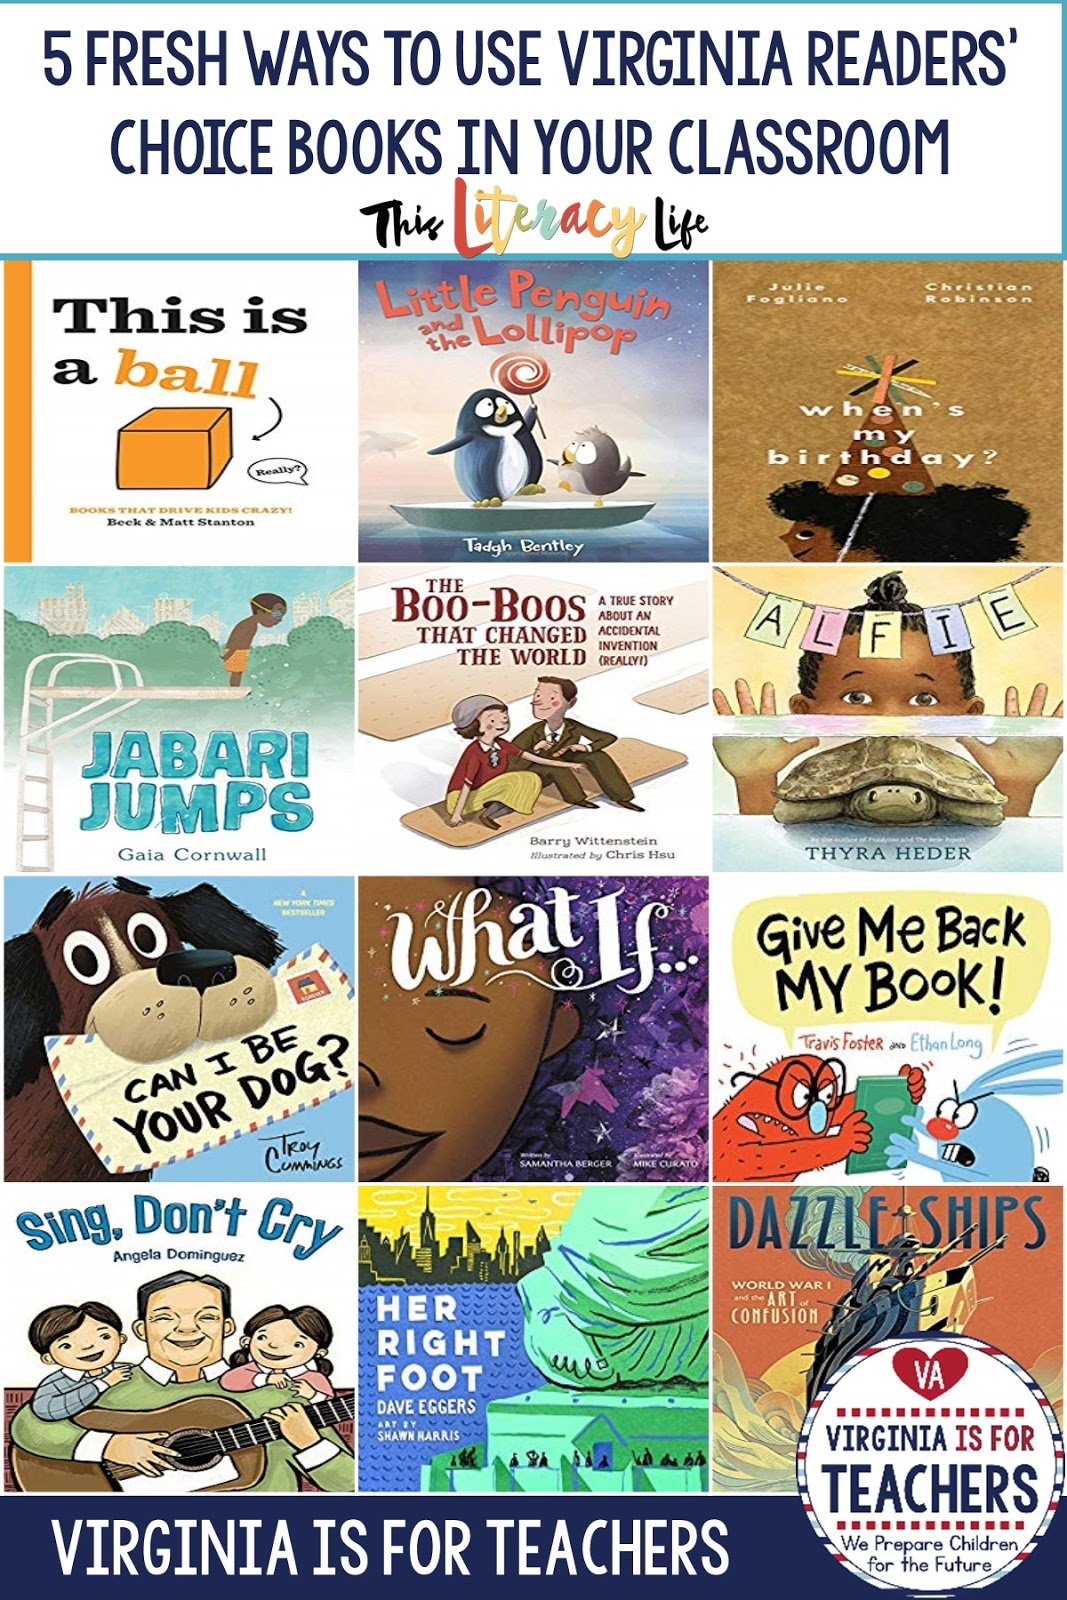 Using picture books in your classroom makes learning so much fun! These Virginia Readers' Choice selections make it fun for everyone with easy ways to incorporate them into your lessons.